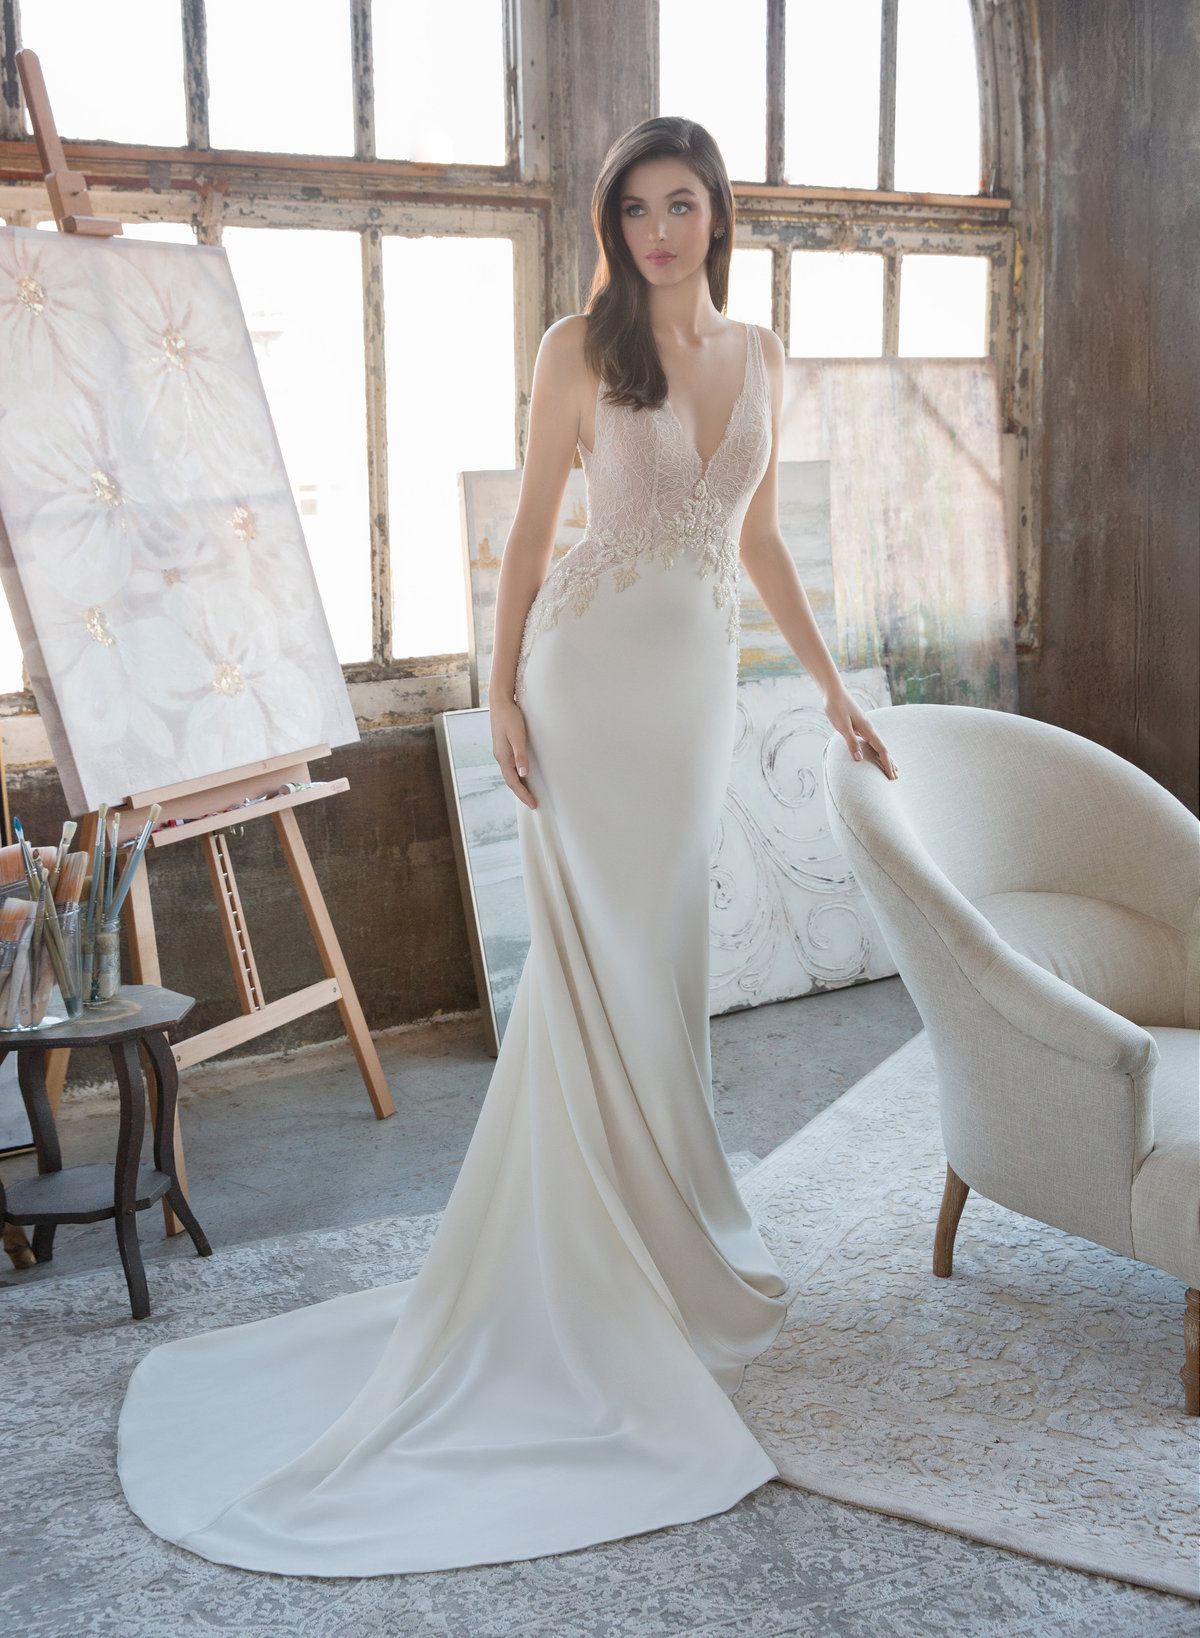 Bridal Gowns And Wedding Dresses By Jlm Couture Style 2806